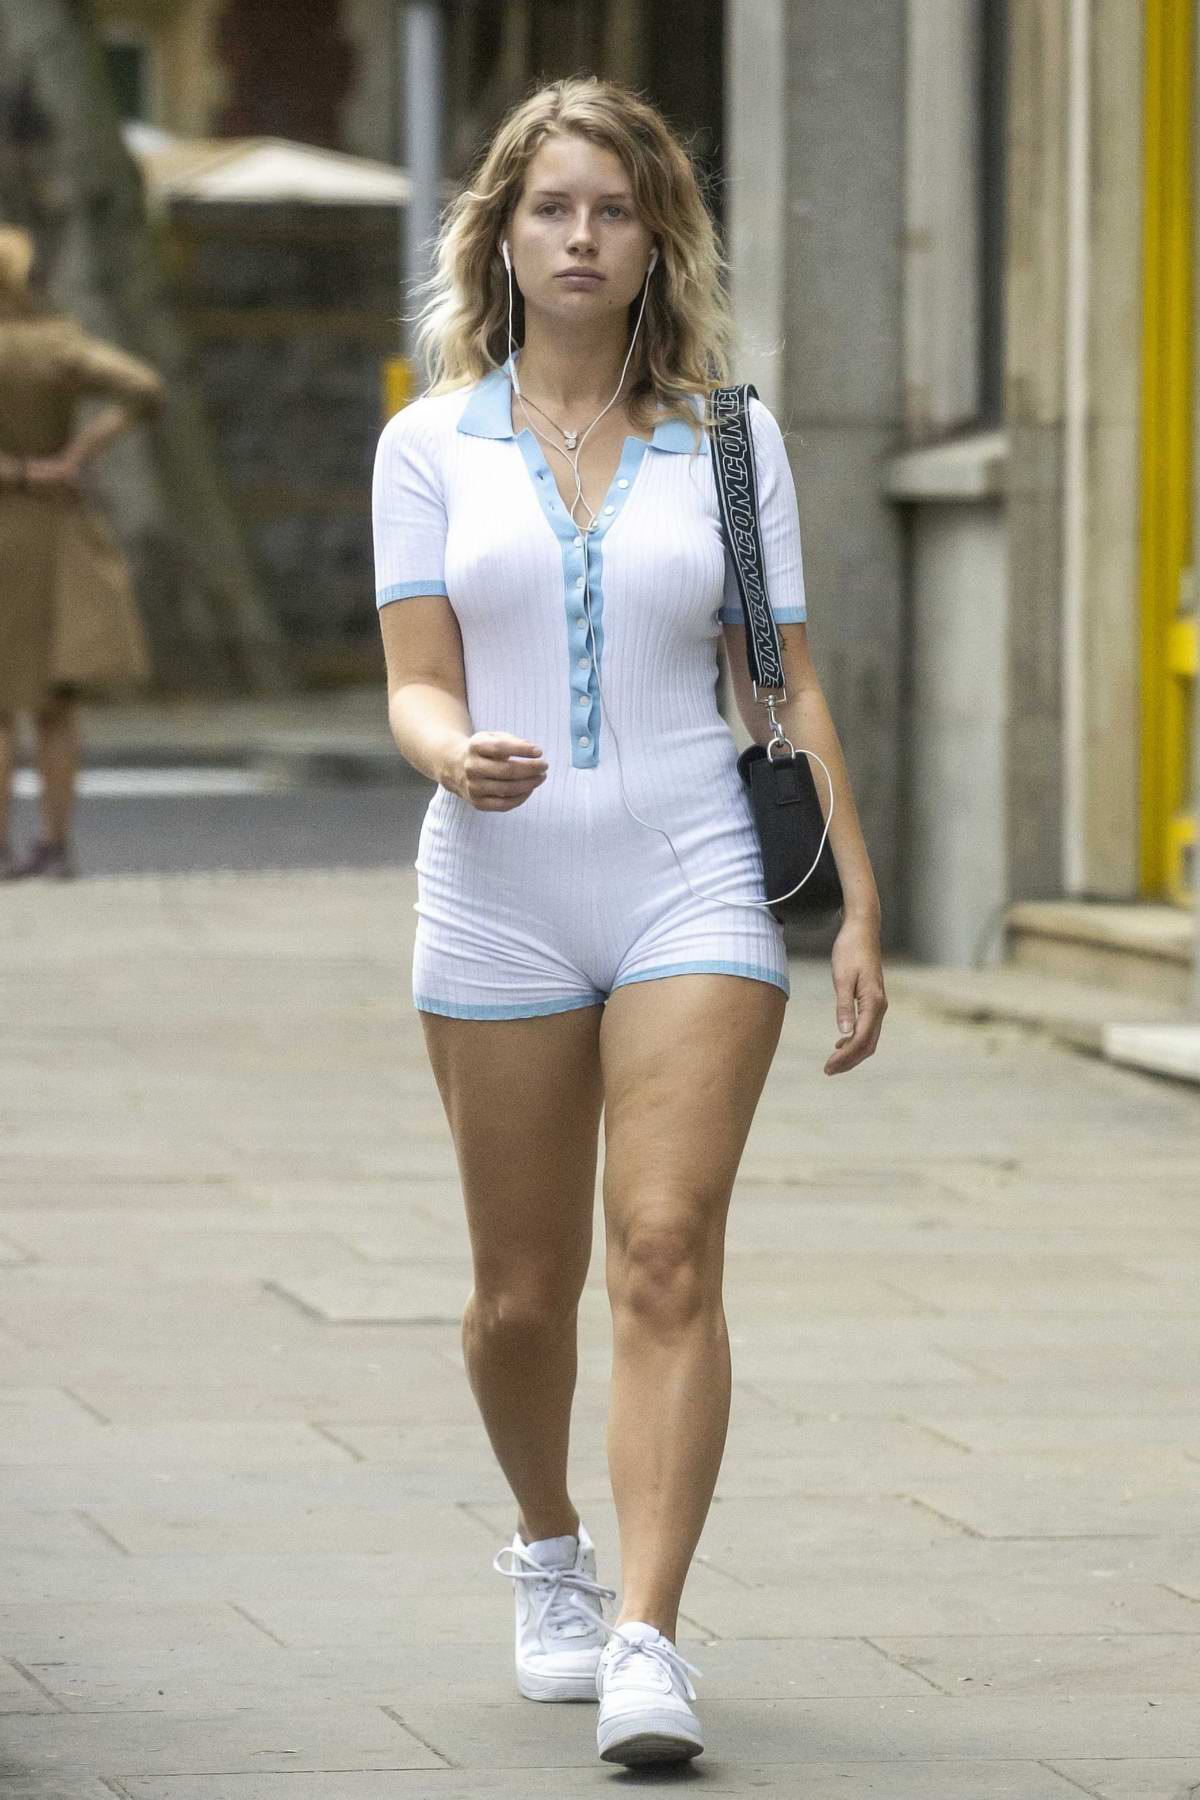 Lottie Moss sports a white romper during a solo outing in London, UK